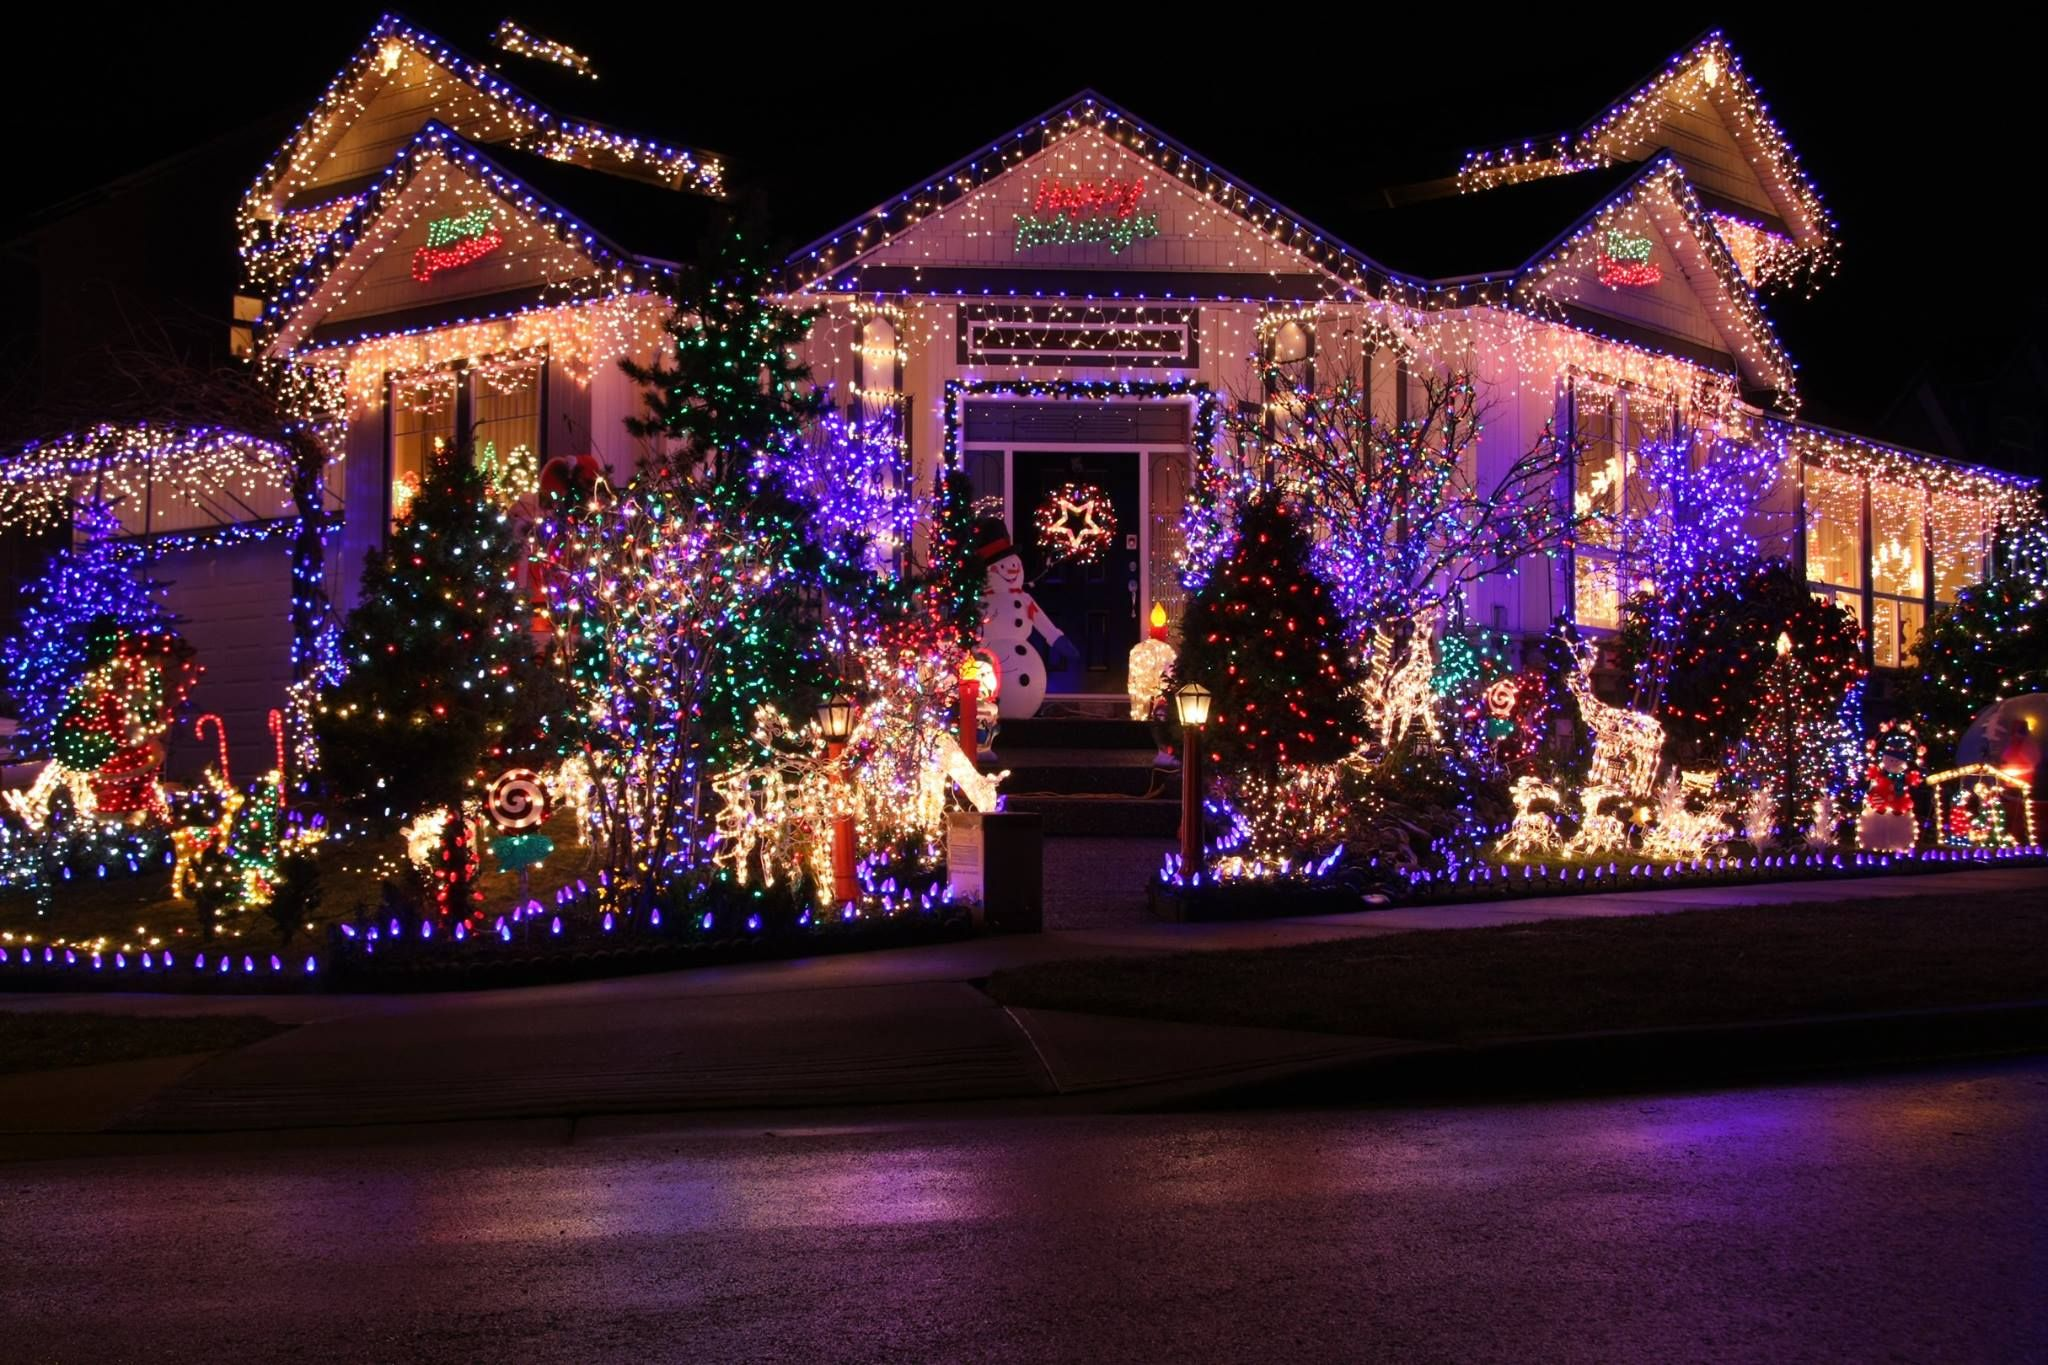 Pin By Tricia Farley On New6 Christmas House Lights Best Christmas Lights Best Christmas Light Displays